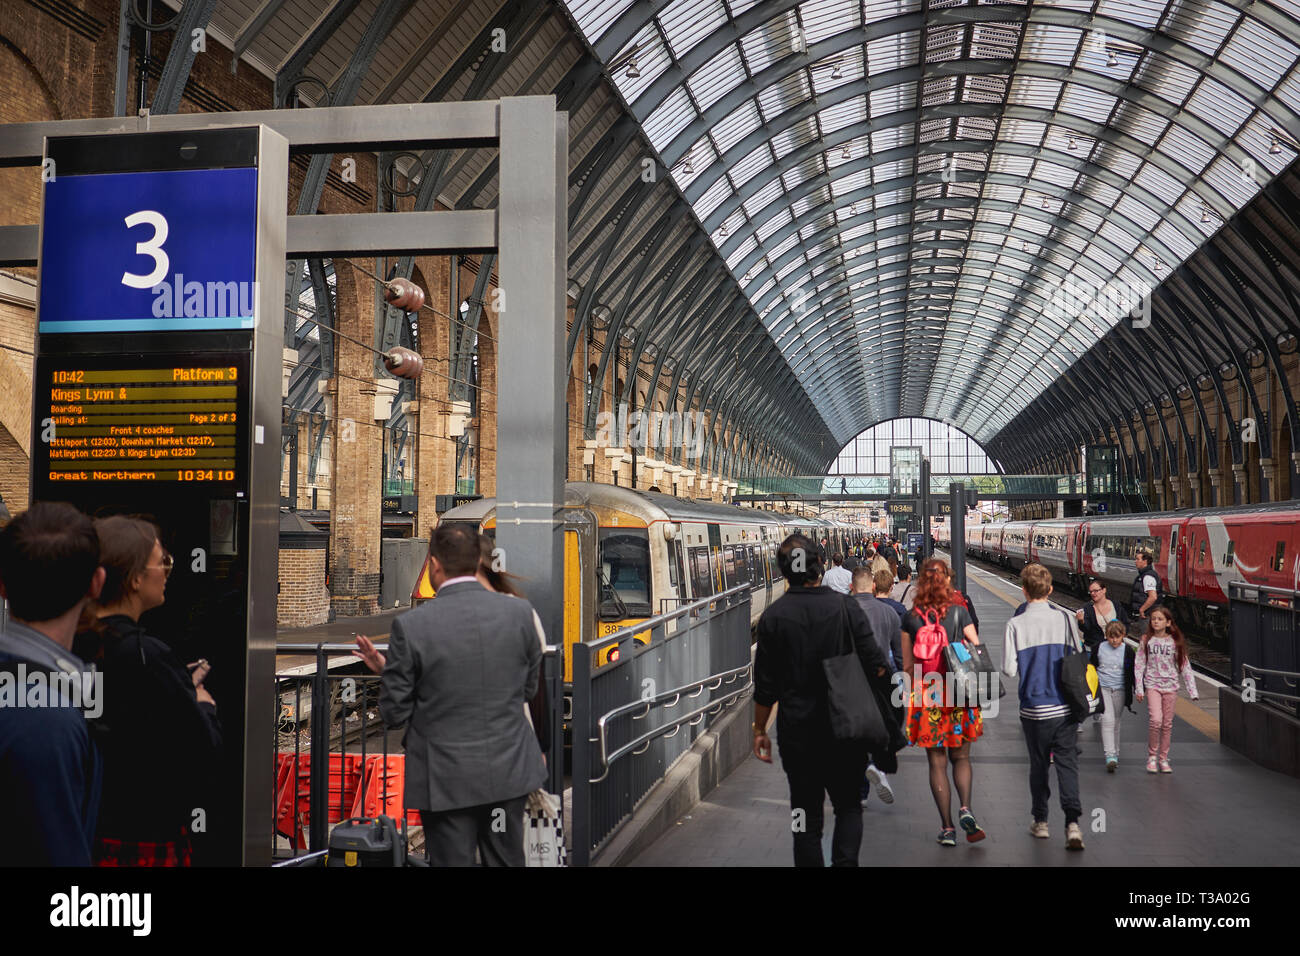 London, UK - December, 2018. Tourists and commuters in King's Cross Station, one of the busiest railway stations in London. - Stock Image